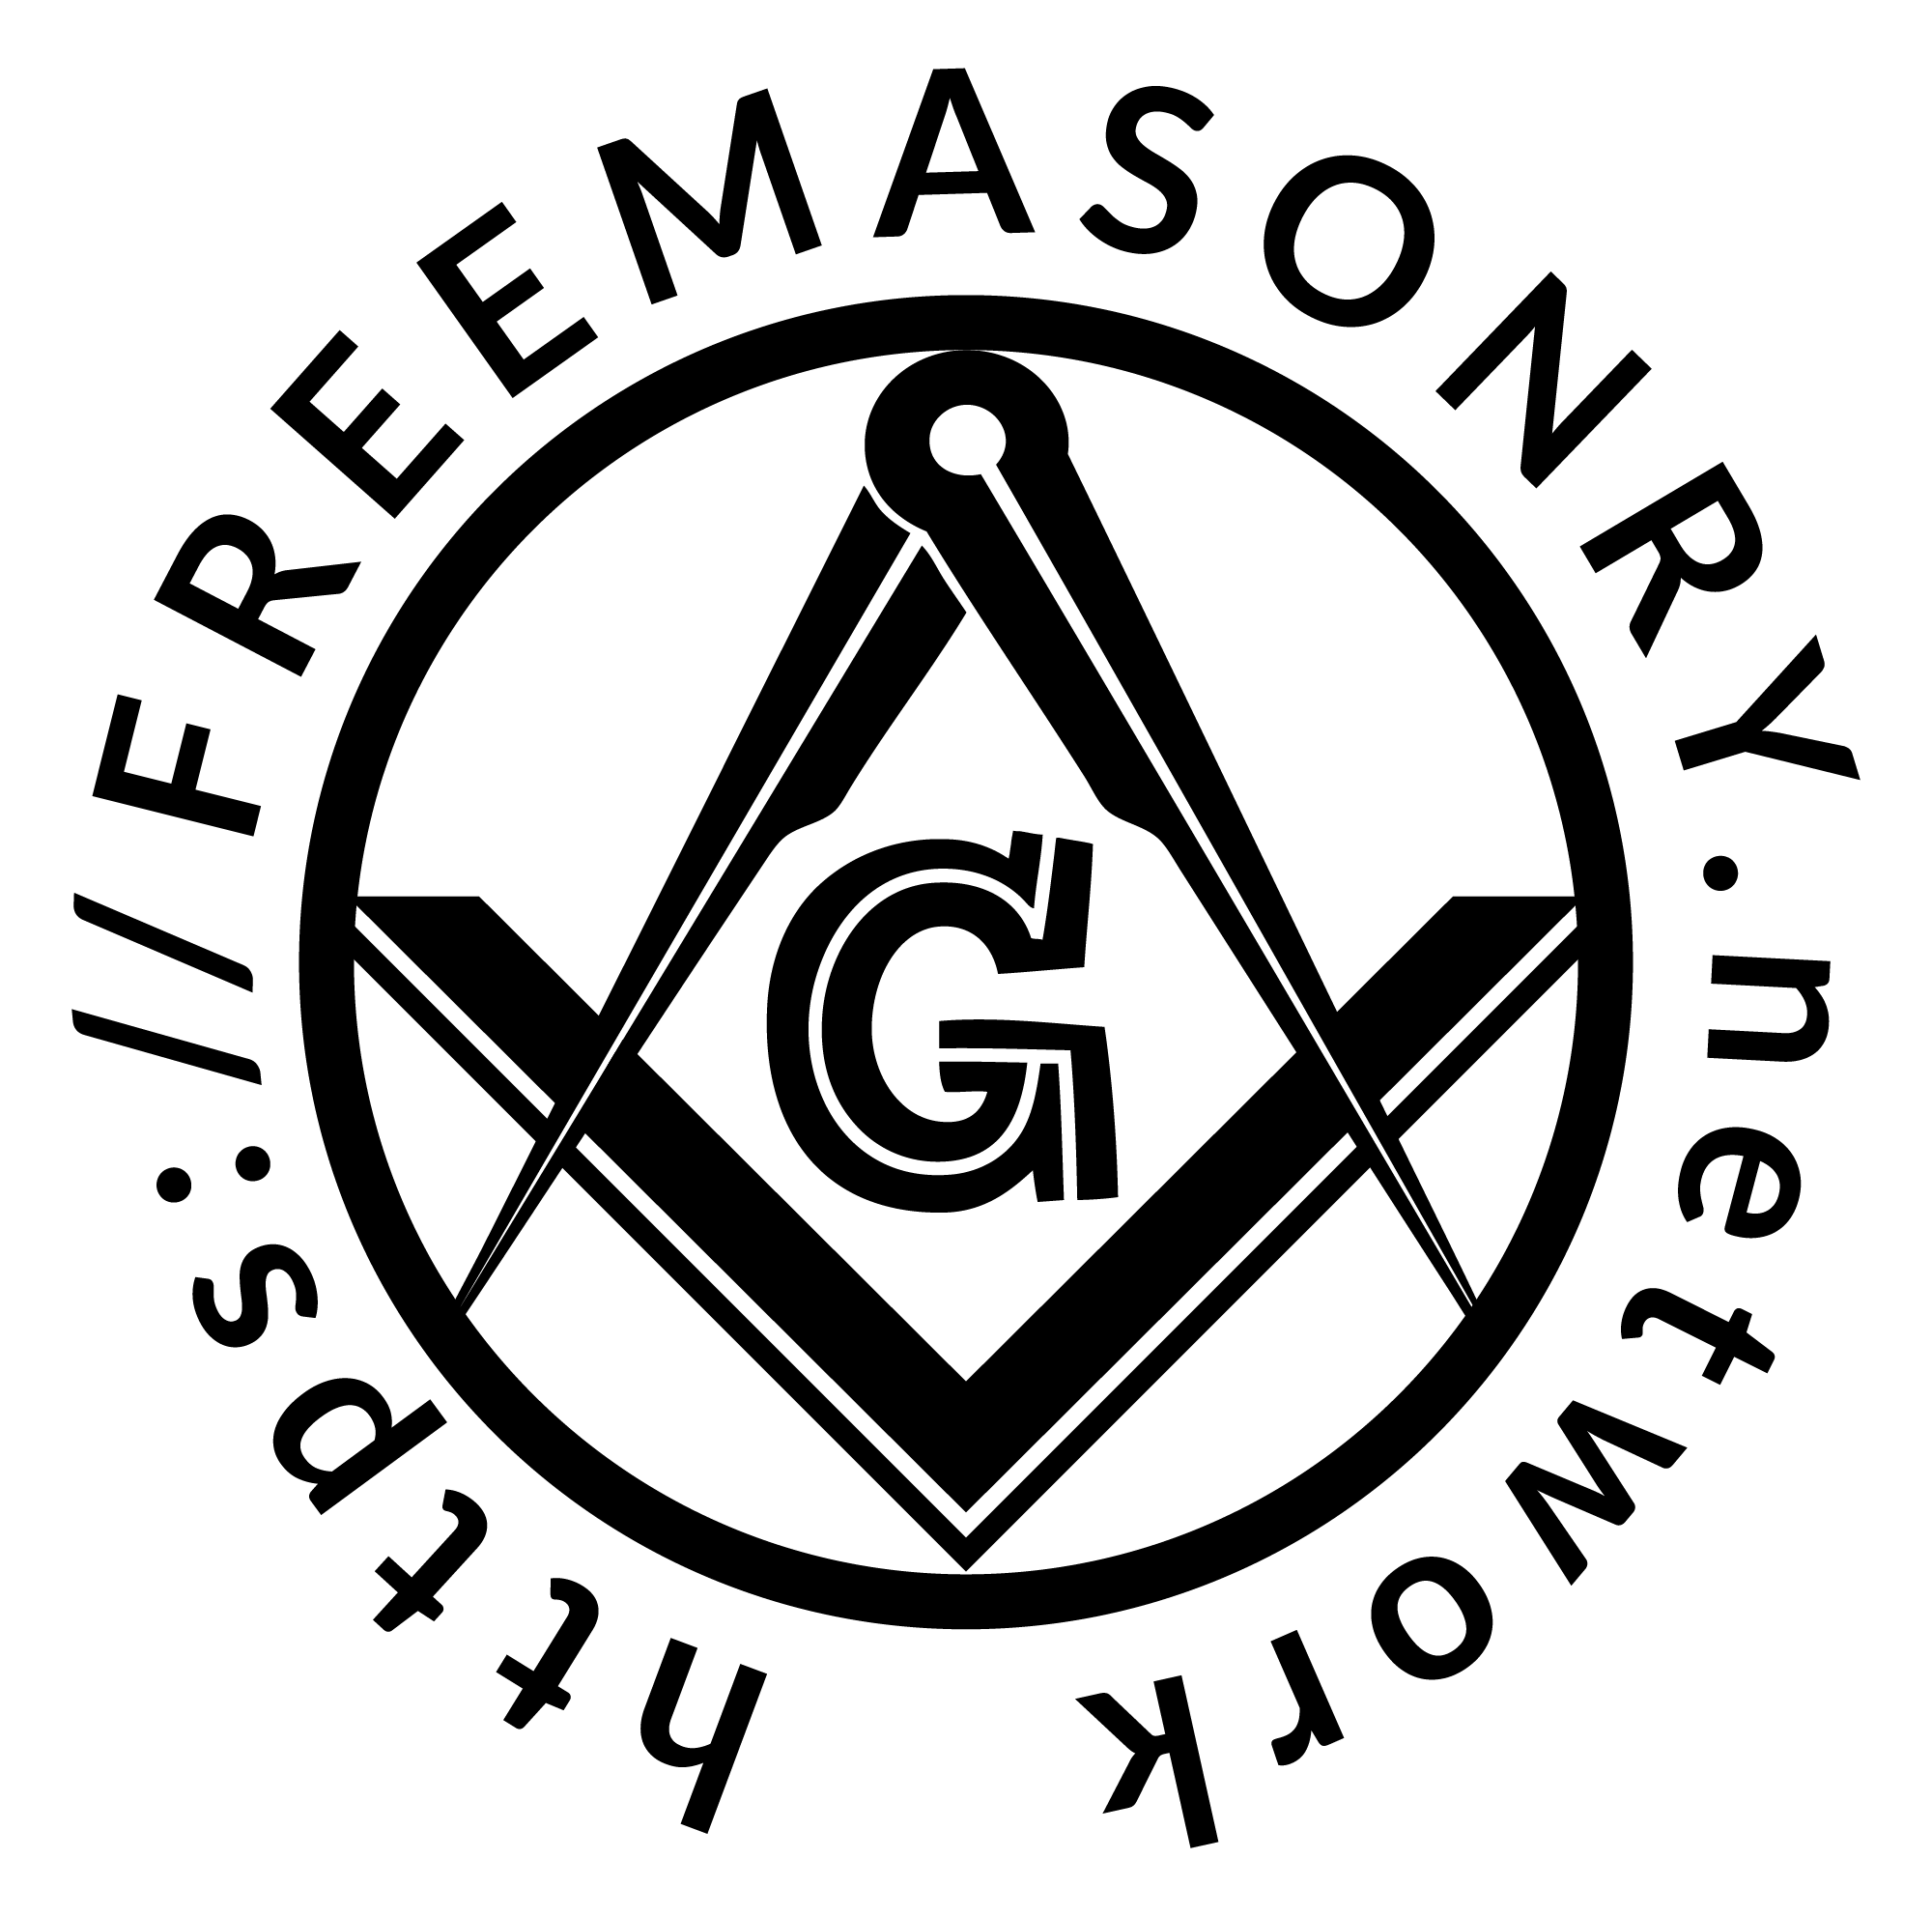 FREEMASONRY IN KENTUCKY